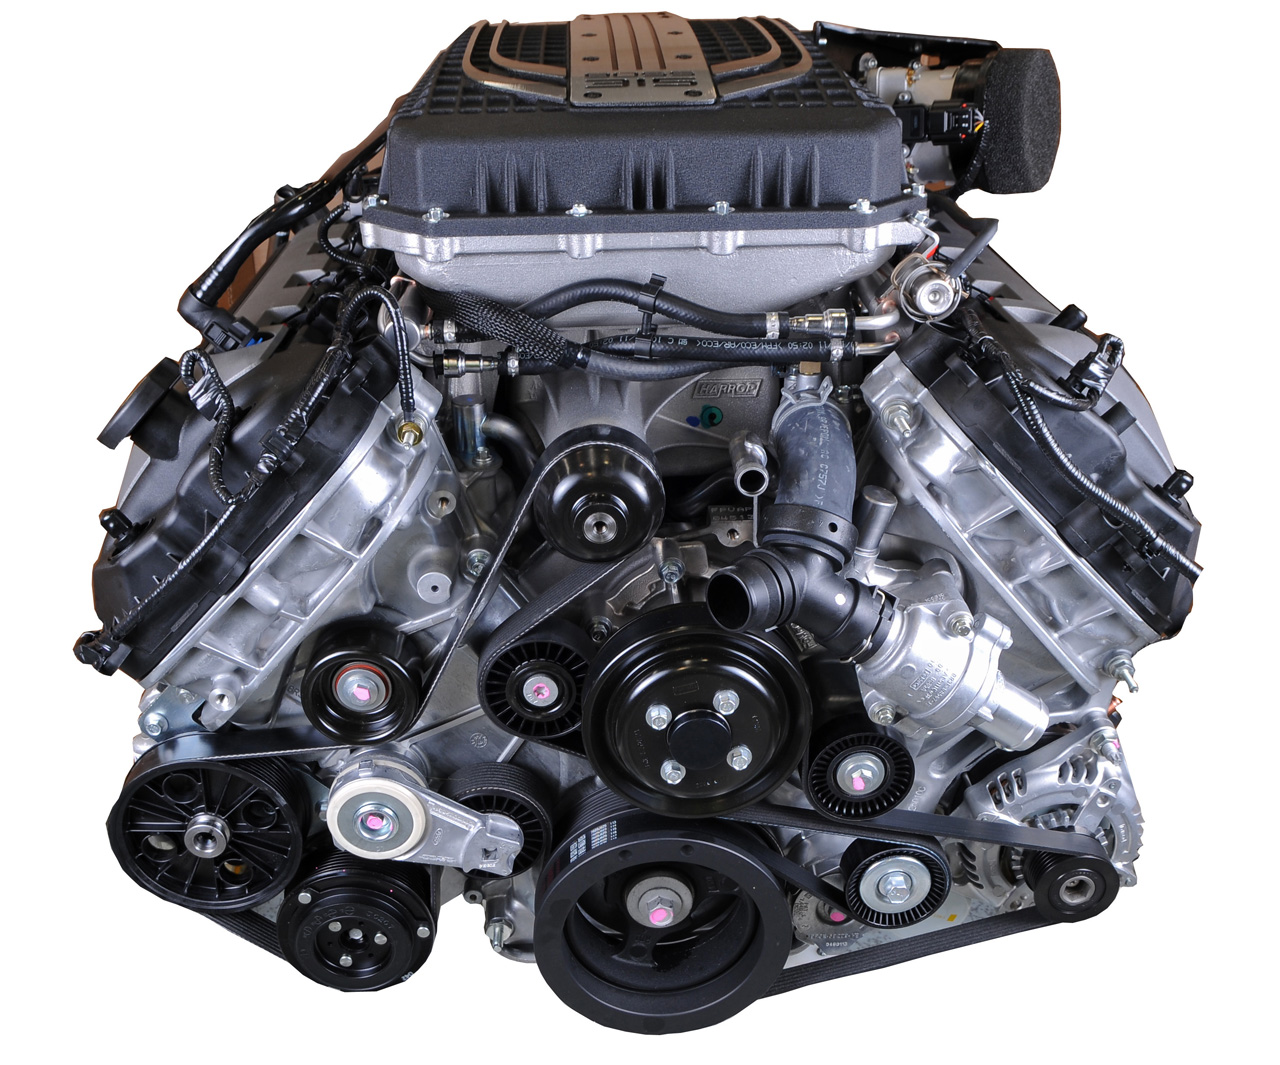 Prodrive Develops Supercharged Ford V8 For Falcon